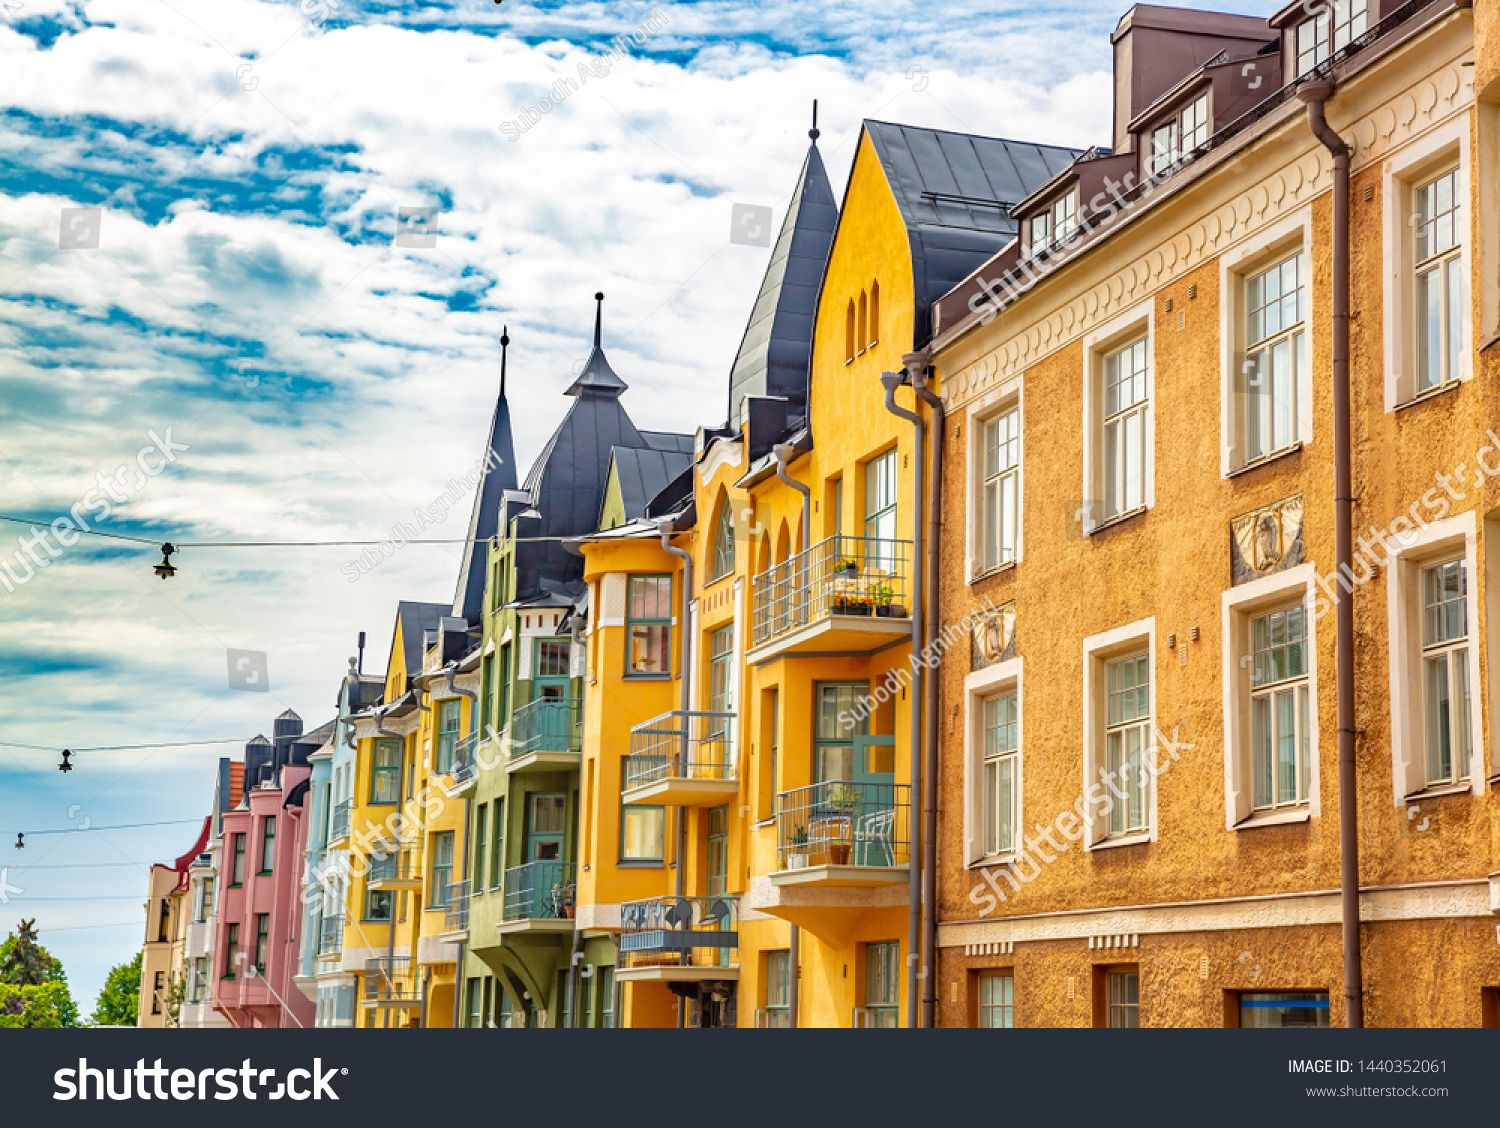 Multicolored Facades Of Buildings In Helsinki The Capital Of Finland The Traditional Scandinavian Architecture Ull Scandinavian Architecture Helsinki Facade